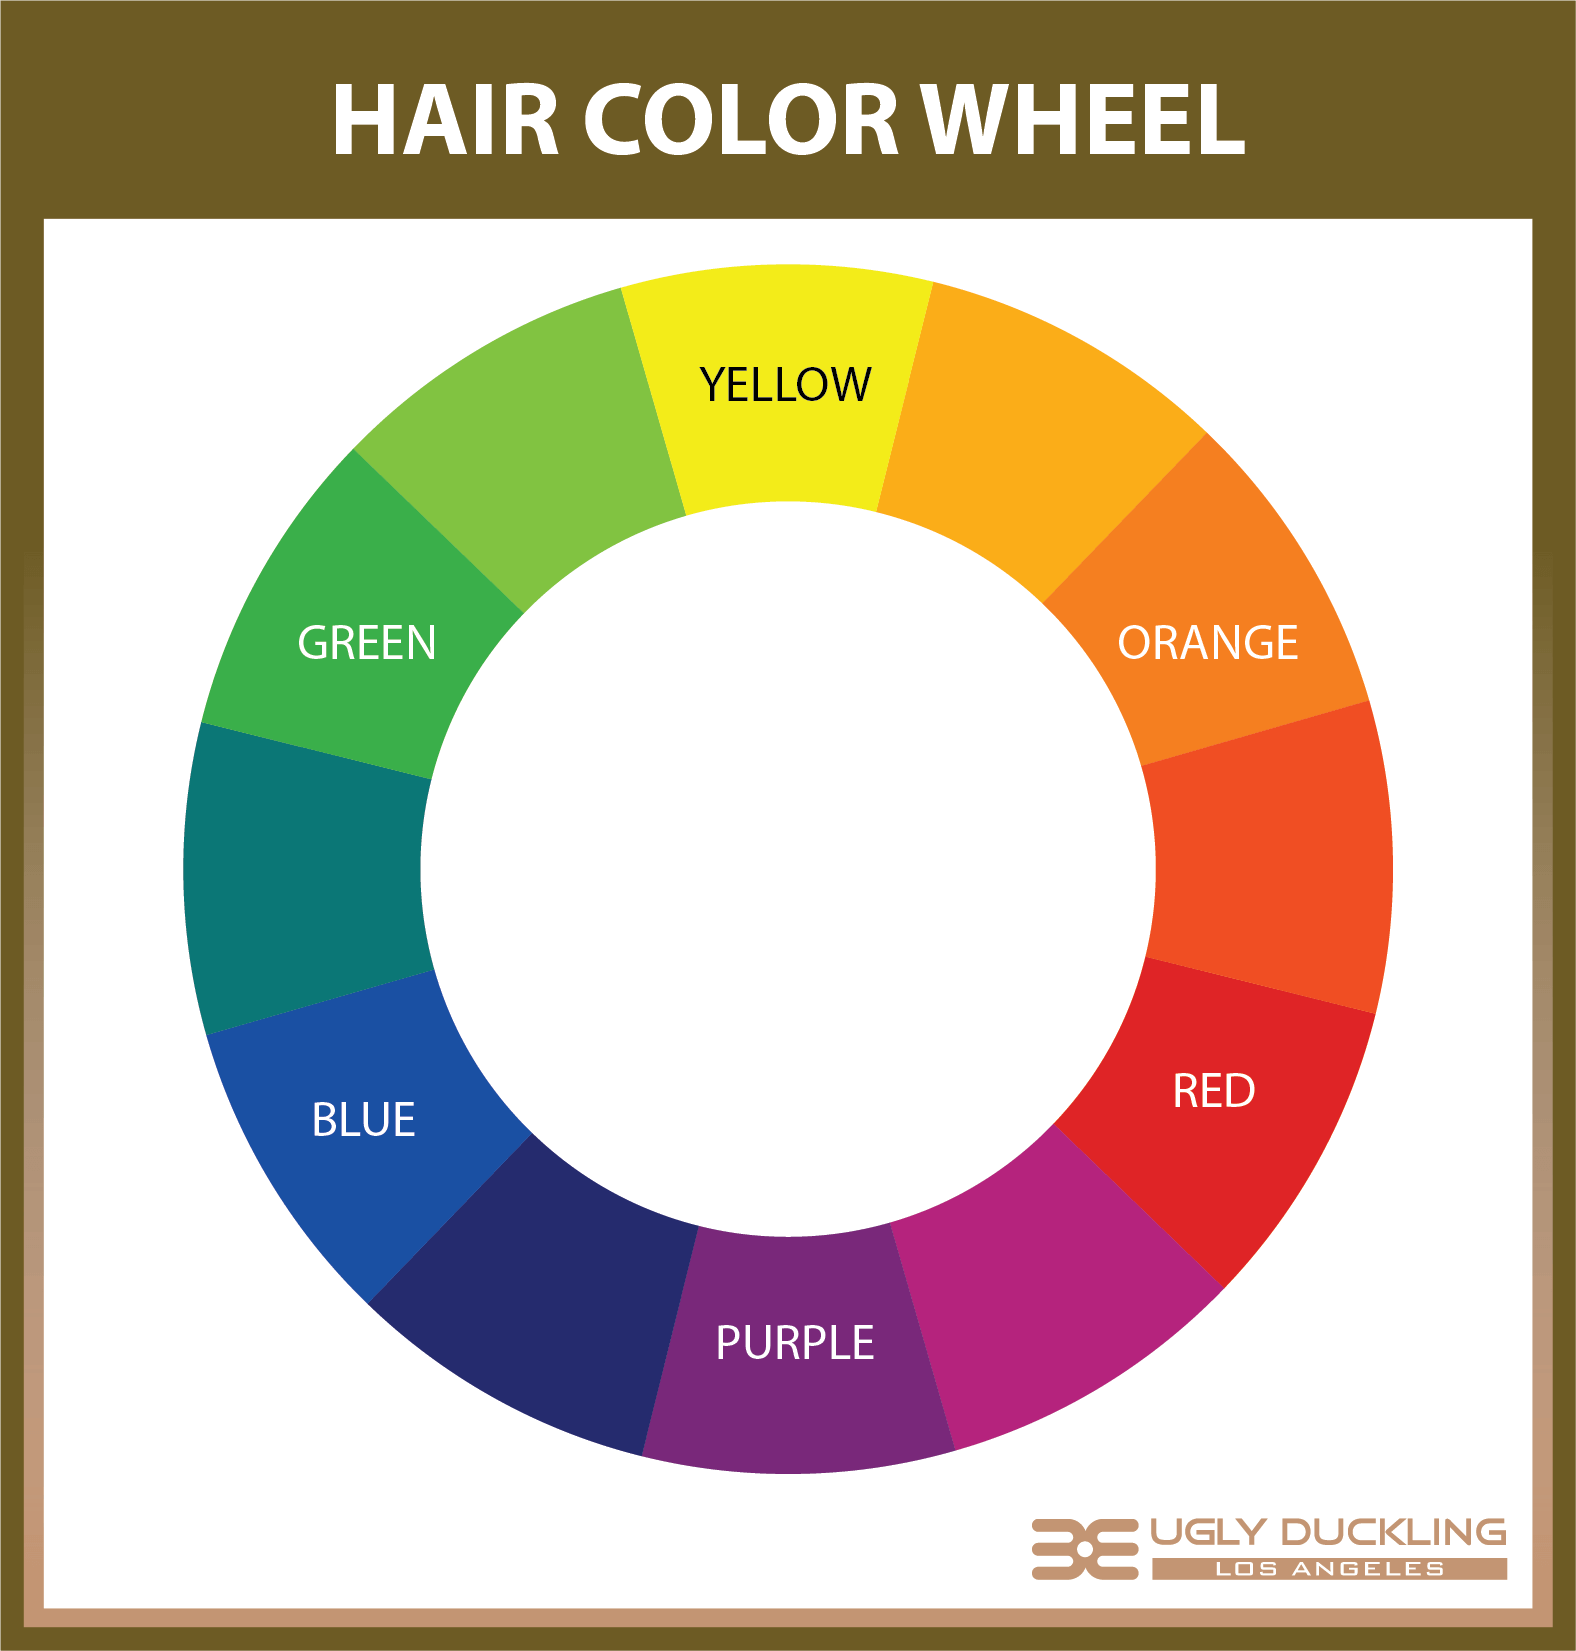 The Hair Color Wheel The Secrets To Color Neutralization And Tone Correction That All Hair Stylists Need To Know Ugly Duckling